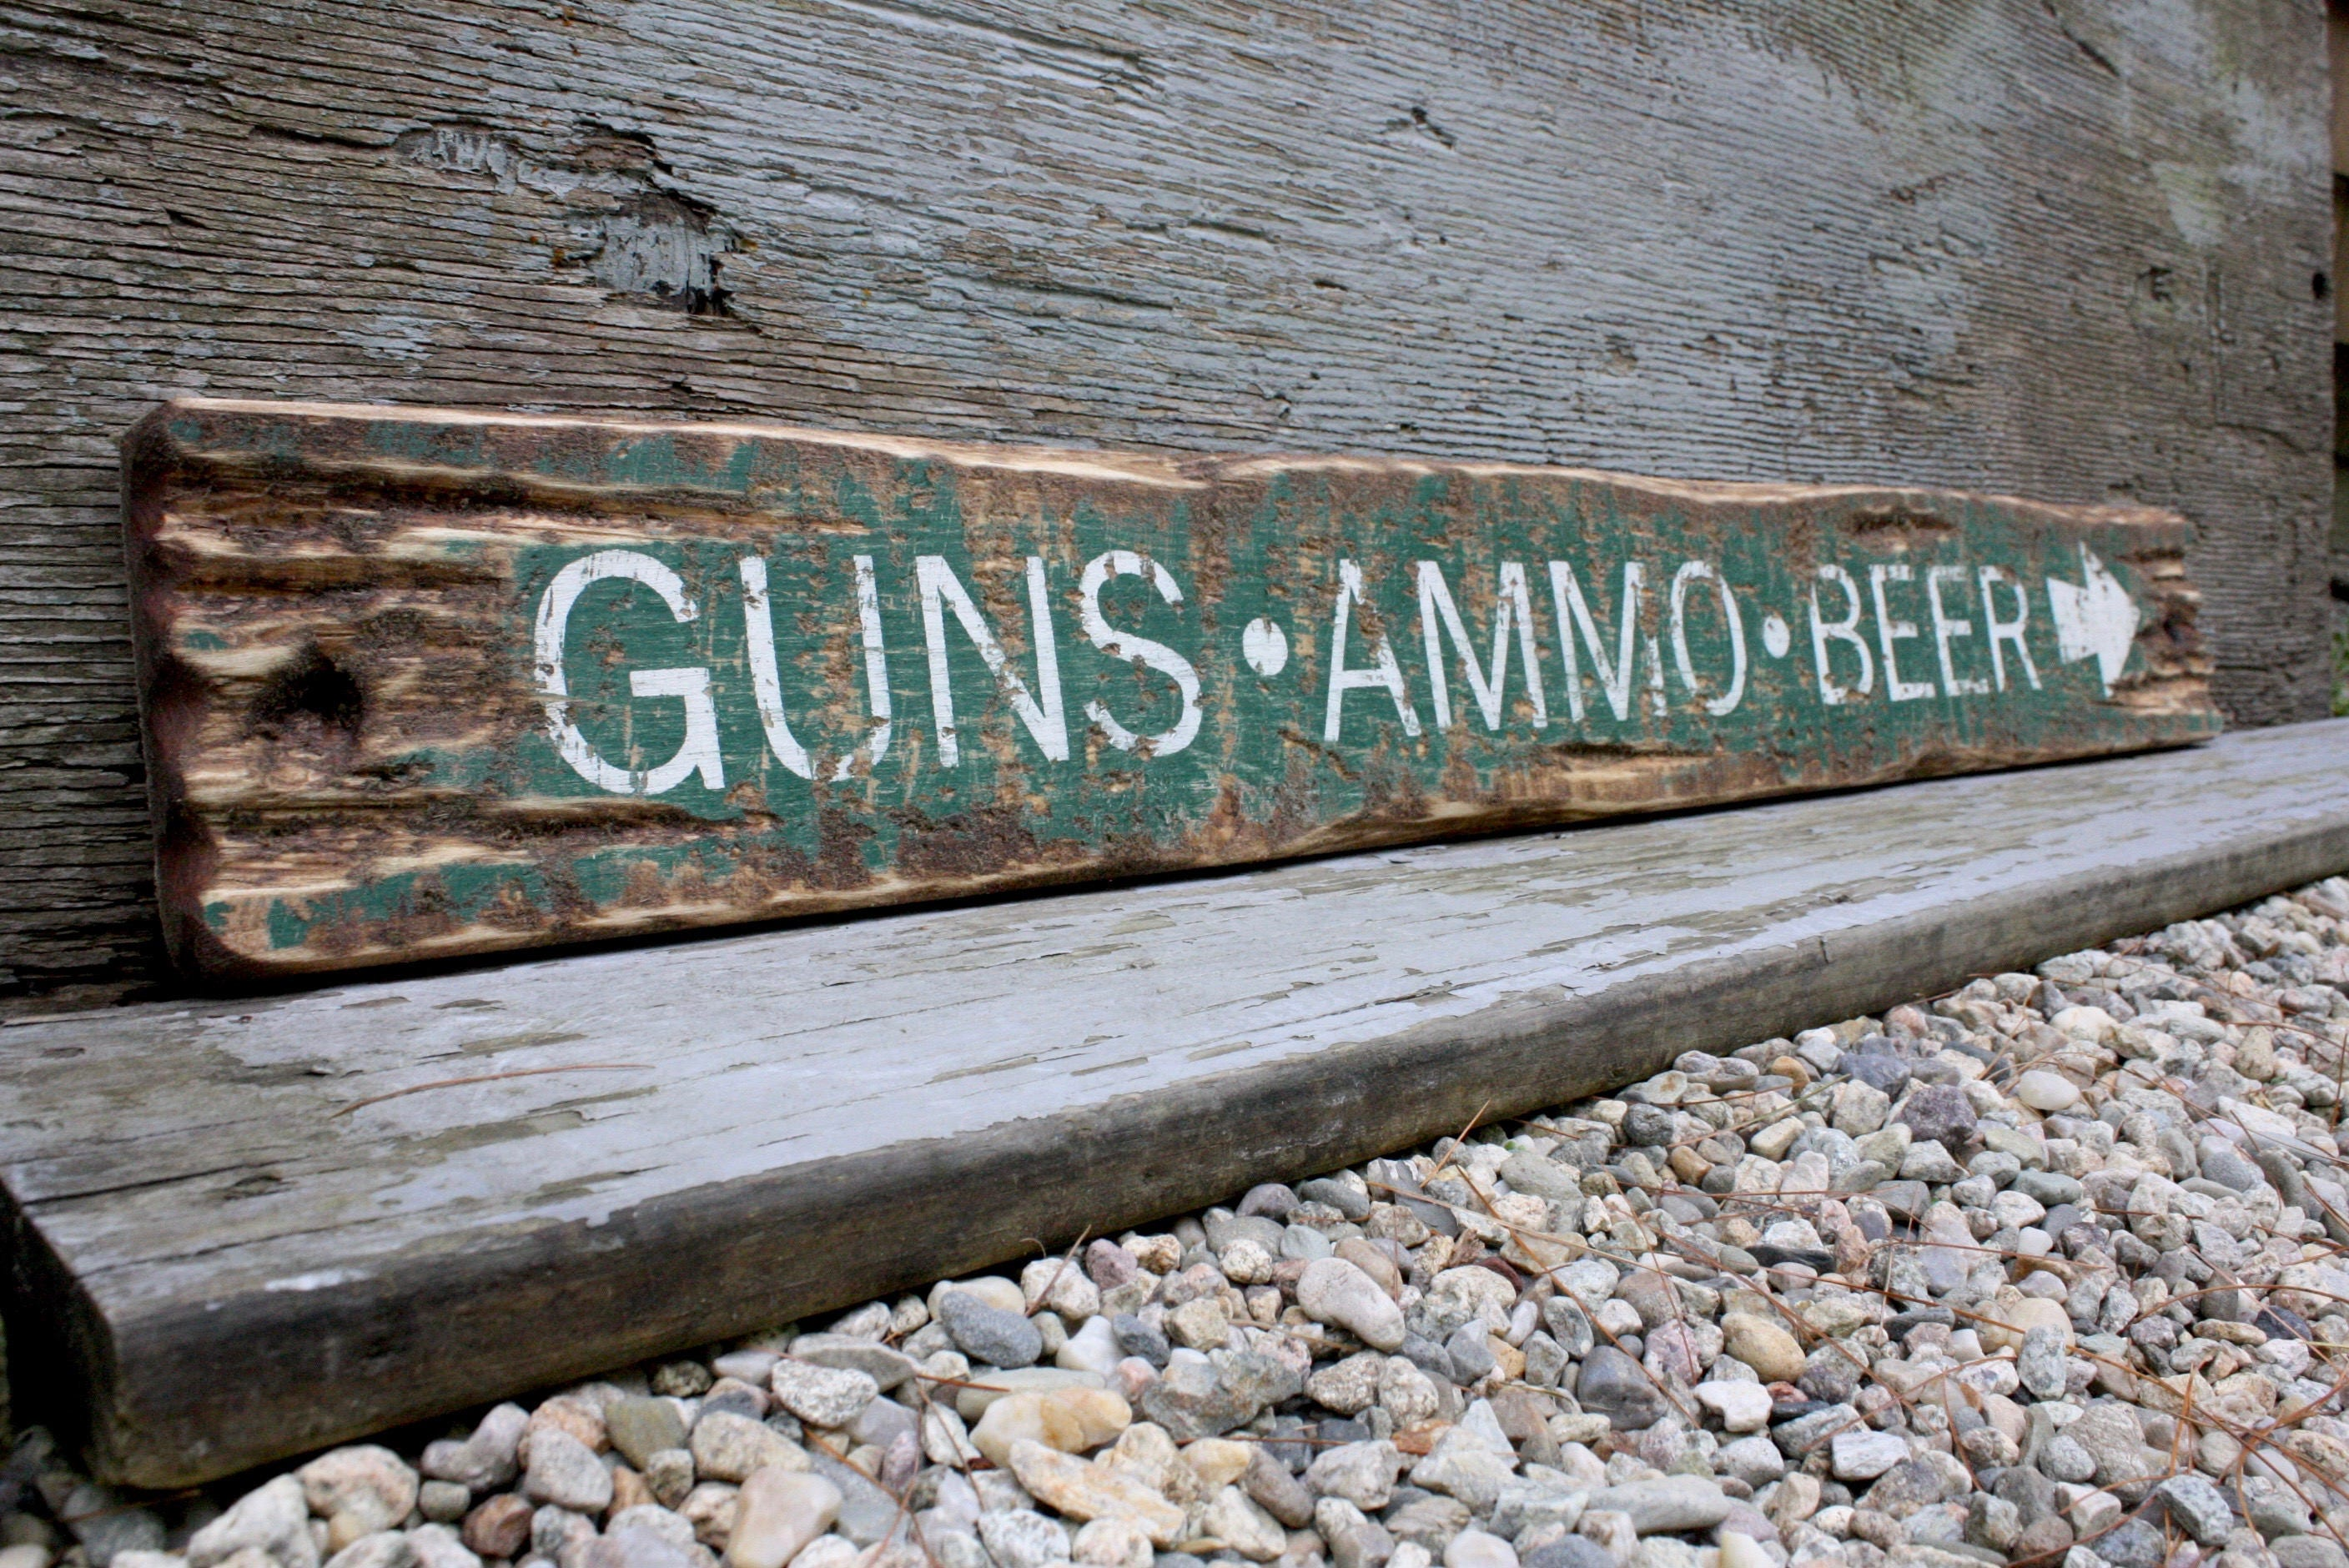 guns ammo beer sign rustic wood sign distressed wood hunting sign cabin decor man cave decor